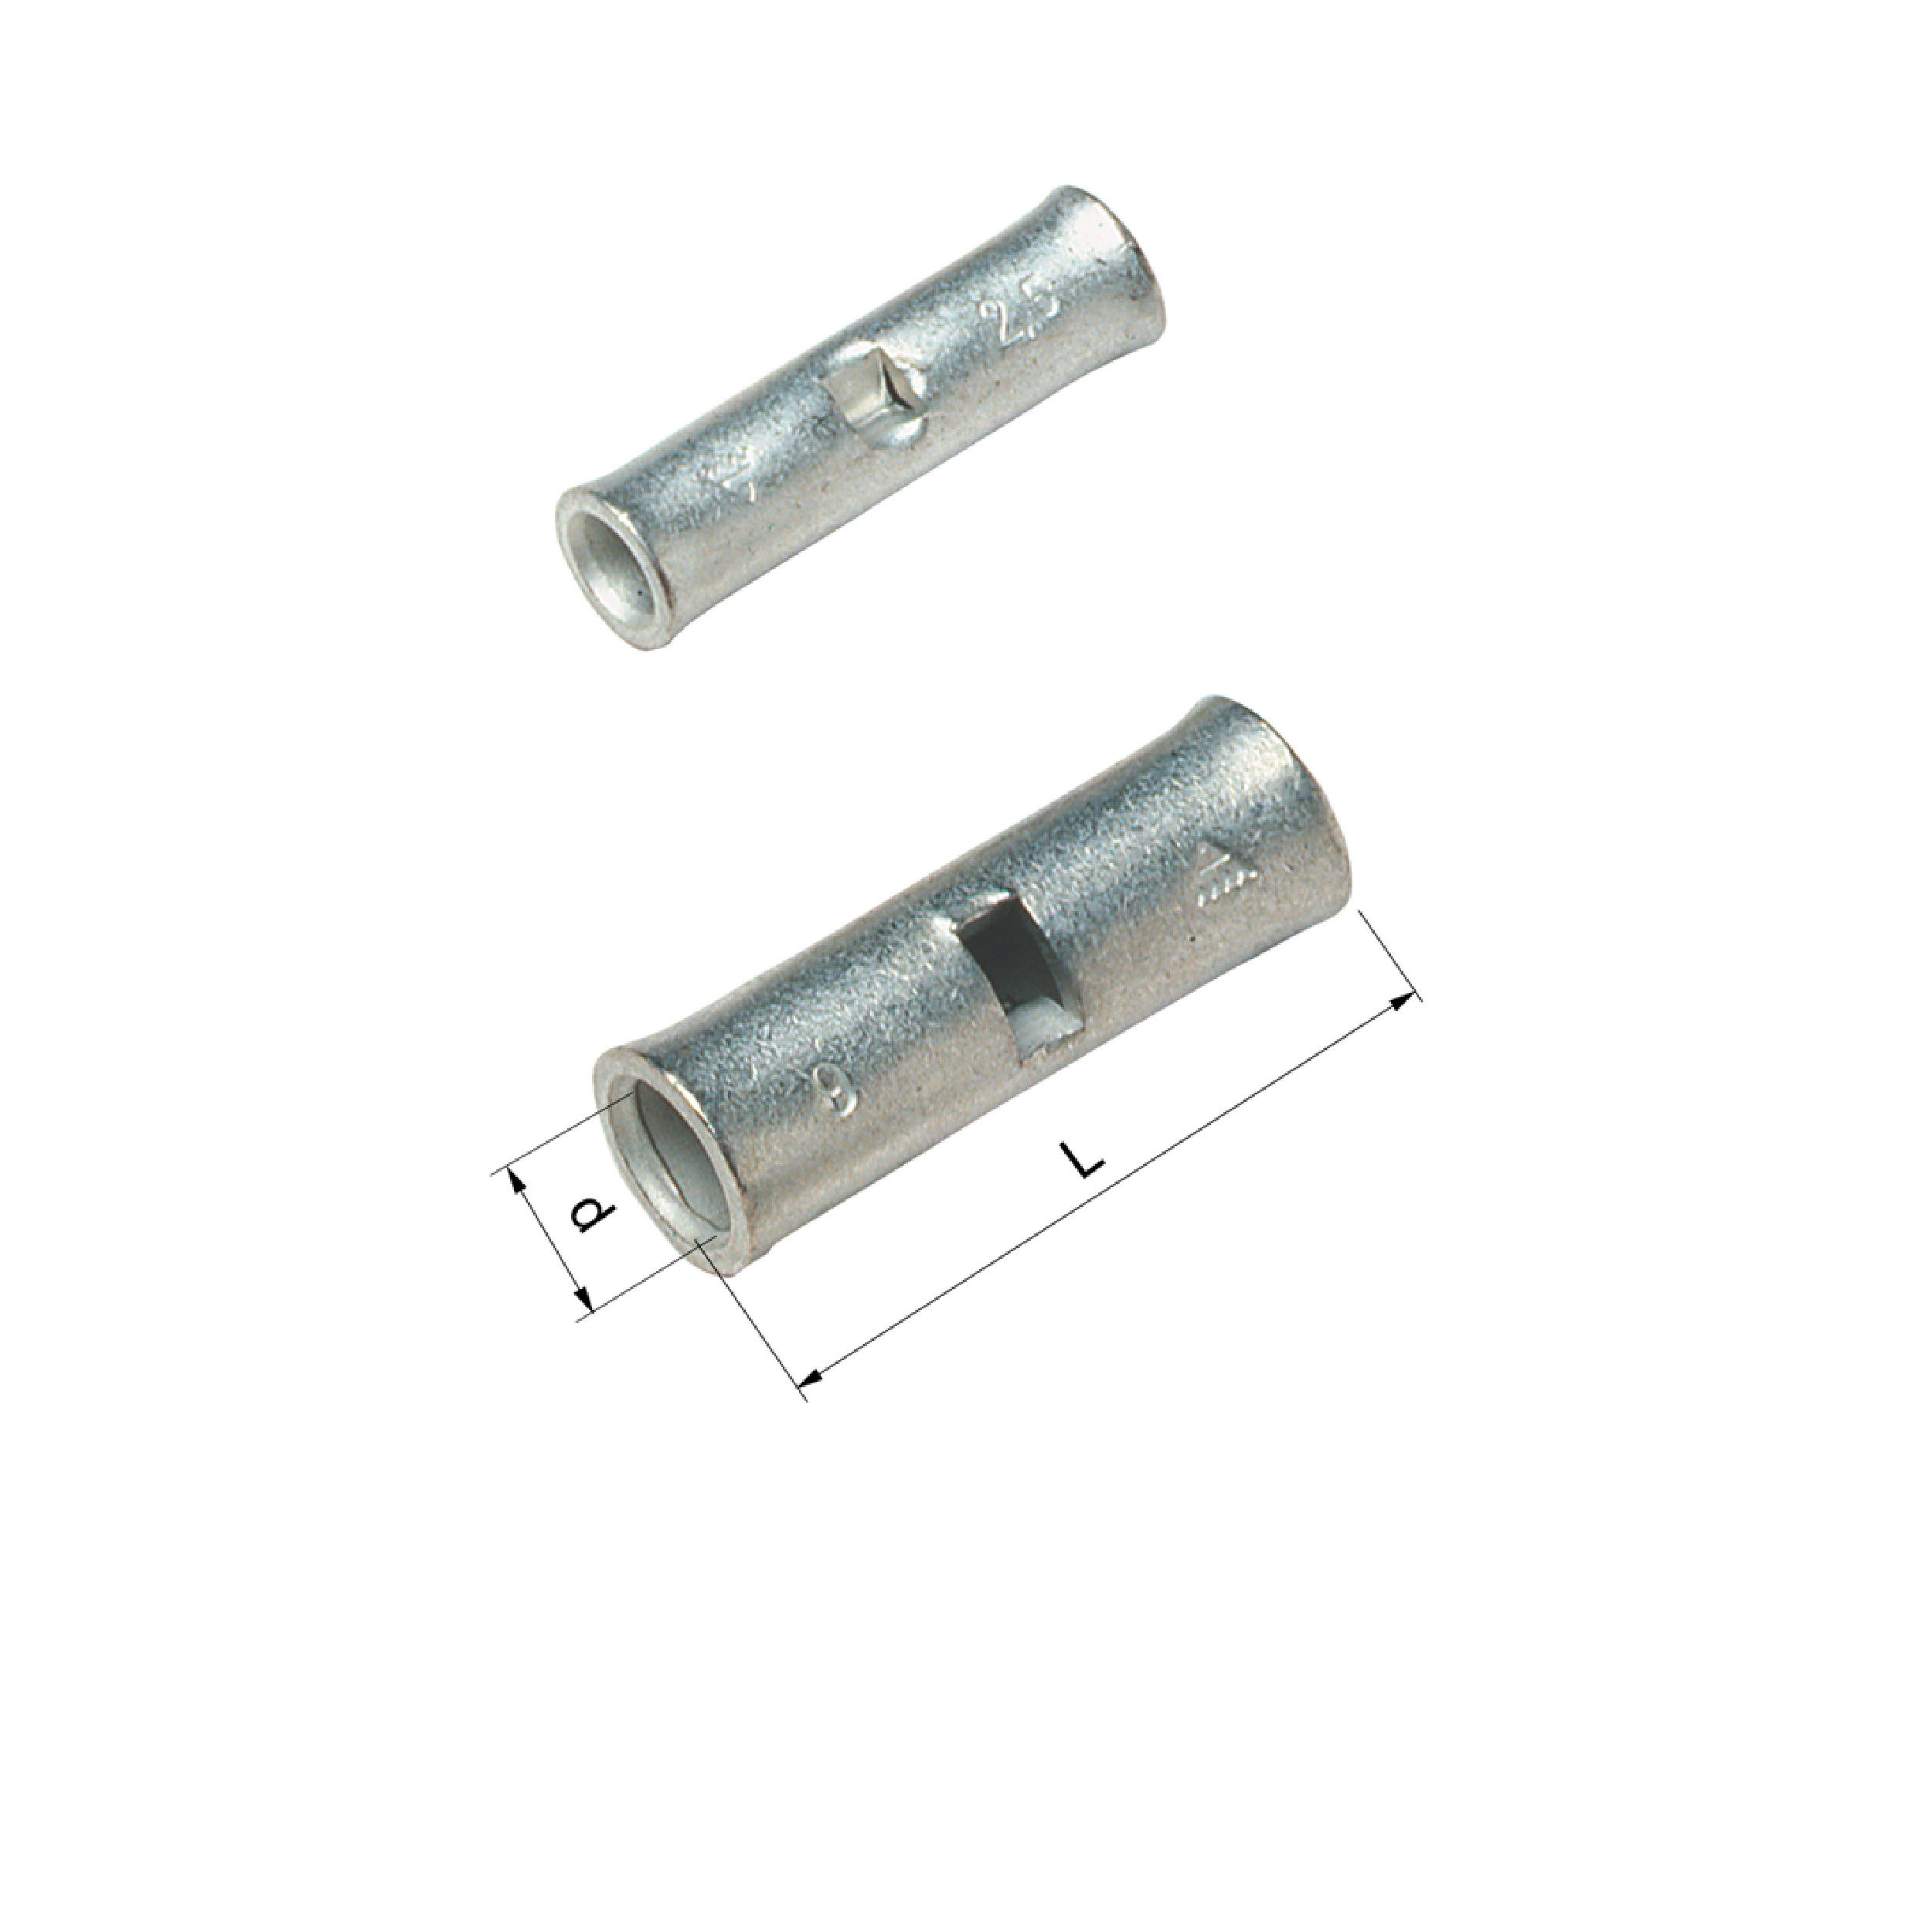 Elpress Un-Insulated Through Connectors (0.75-10mm²)